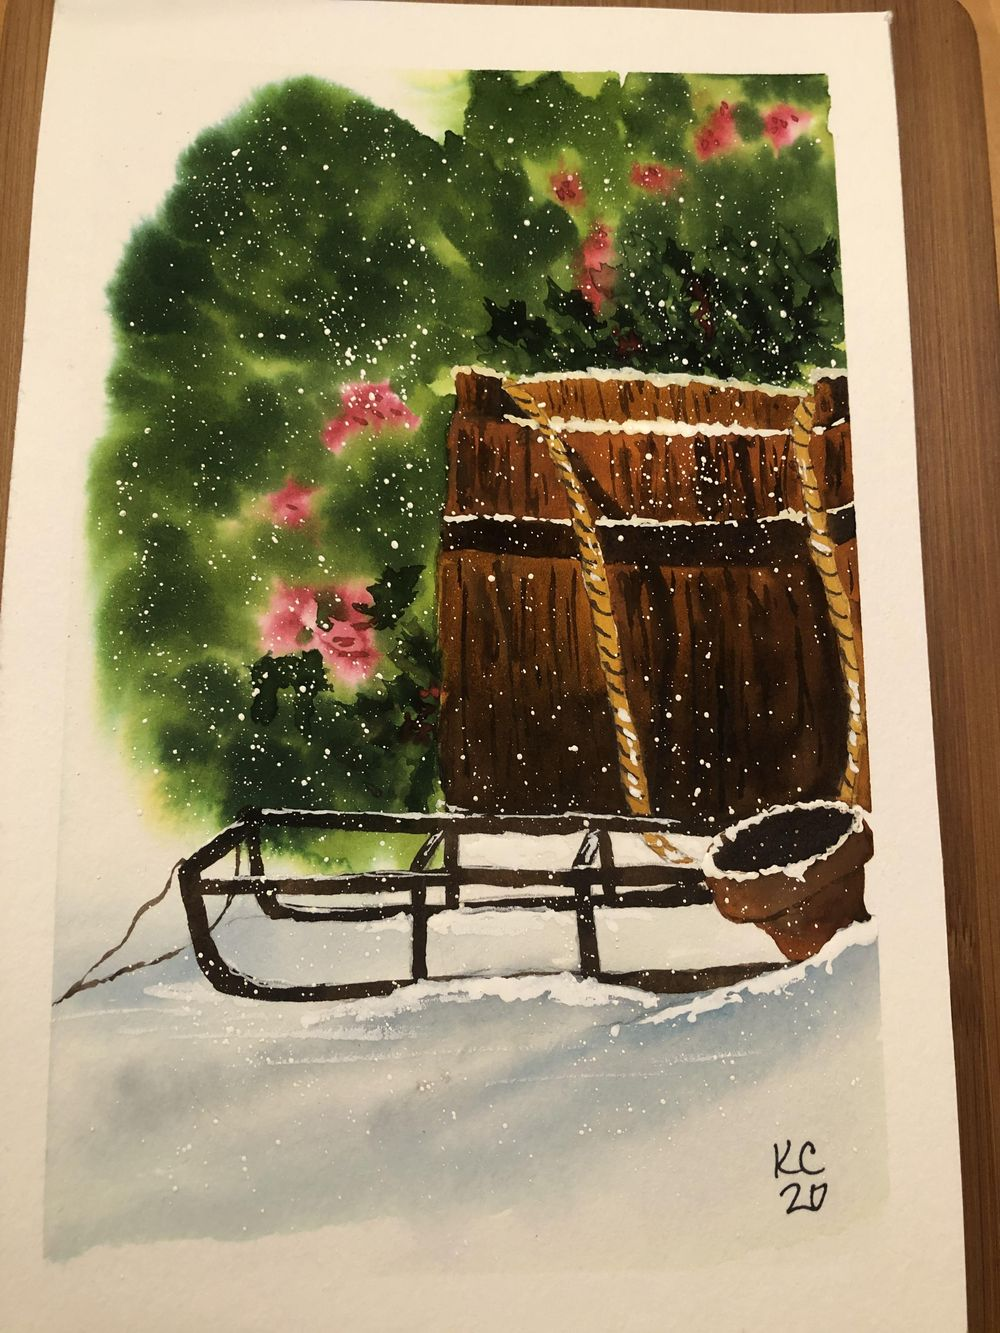 Countdown to Christmas - image 3 - student project